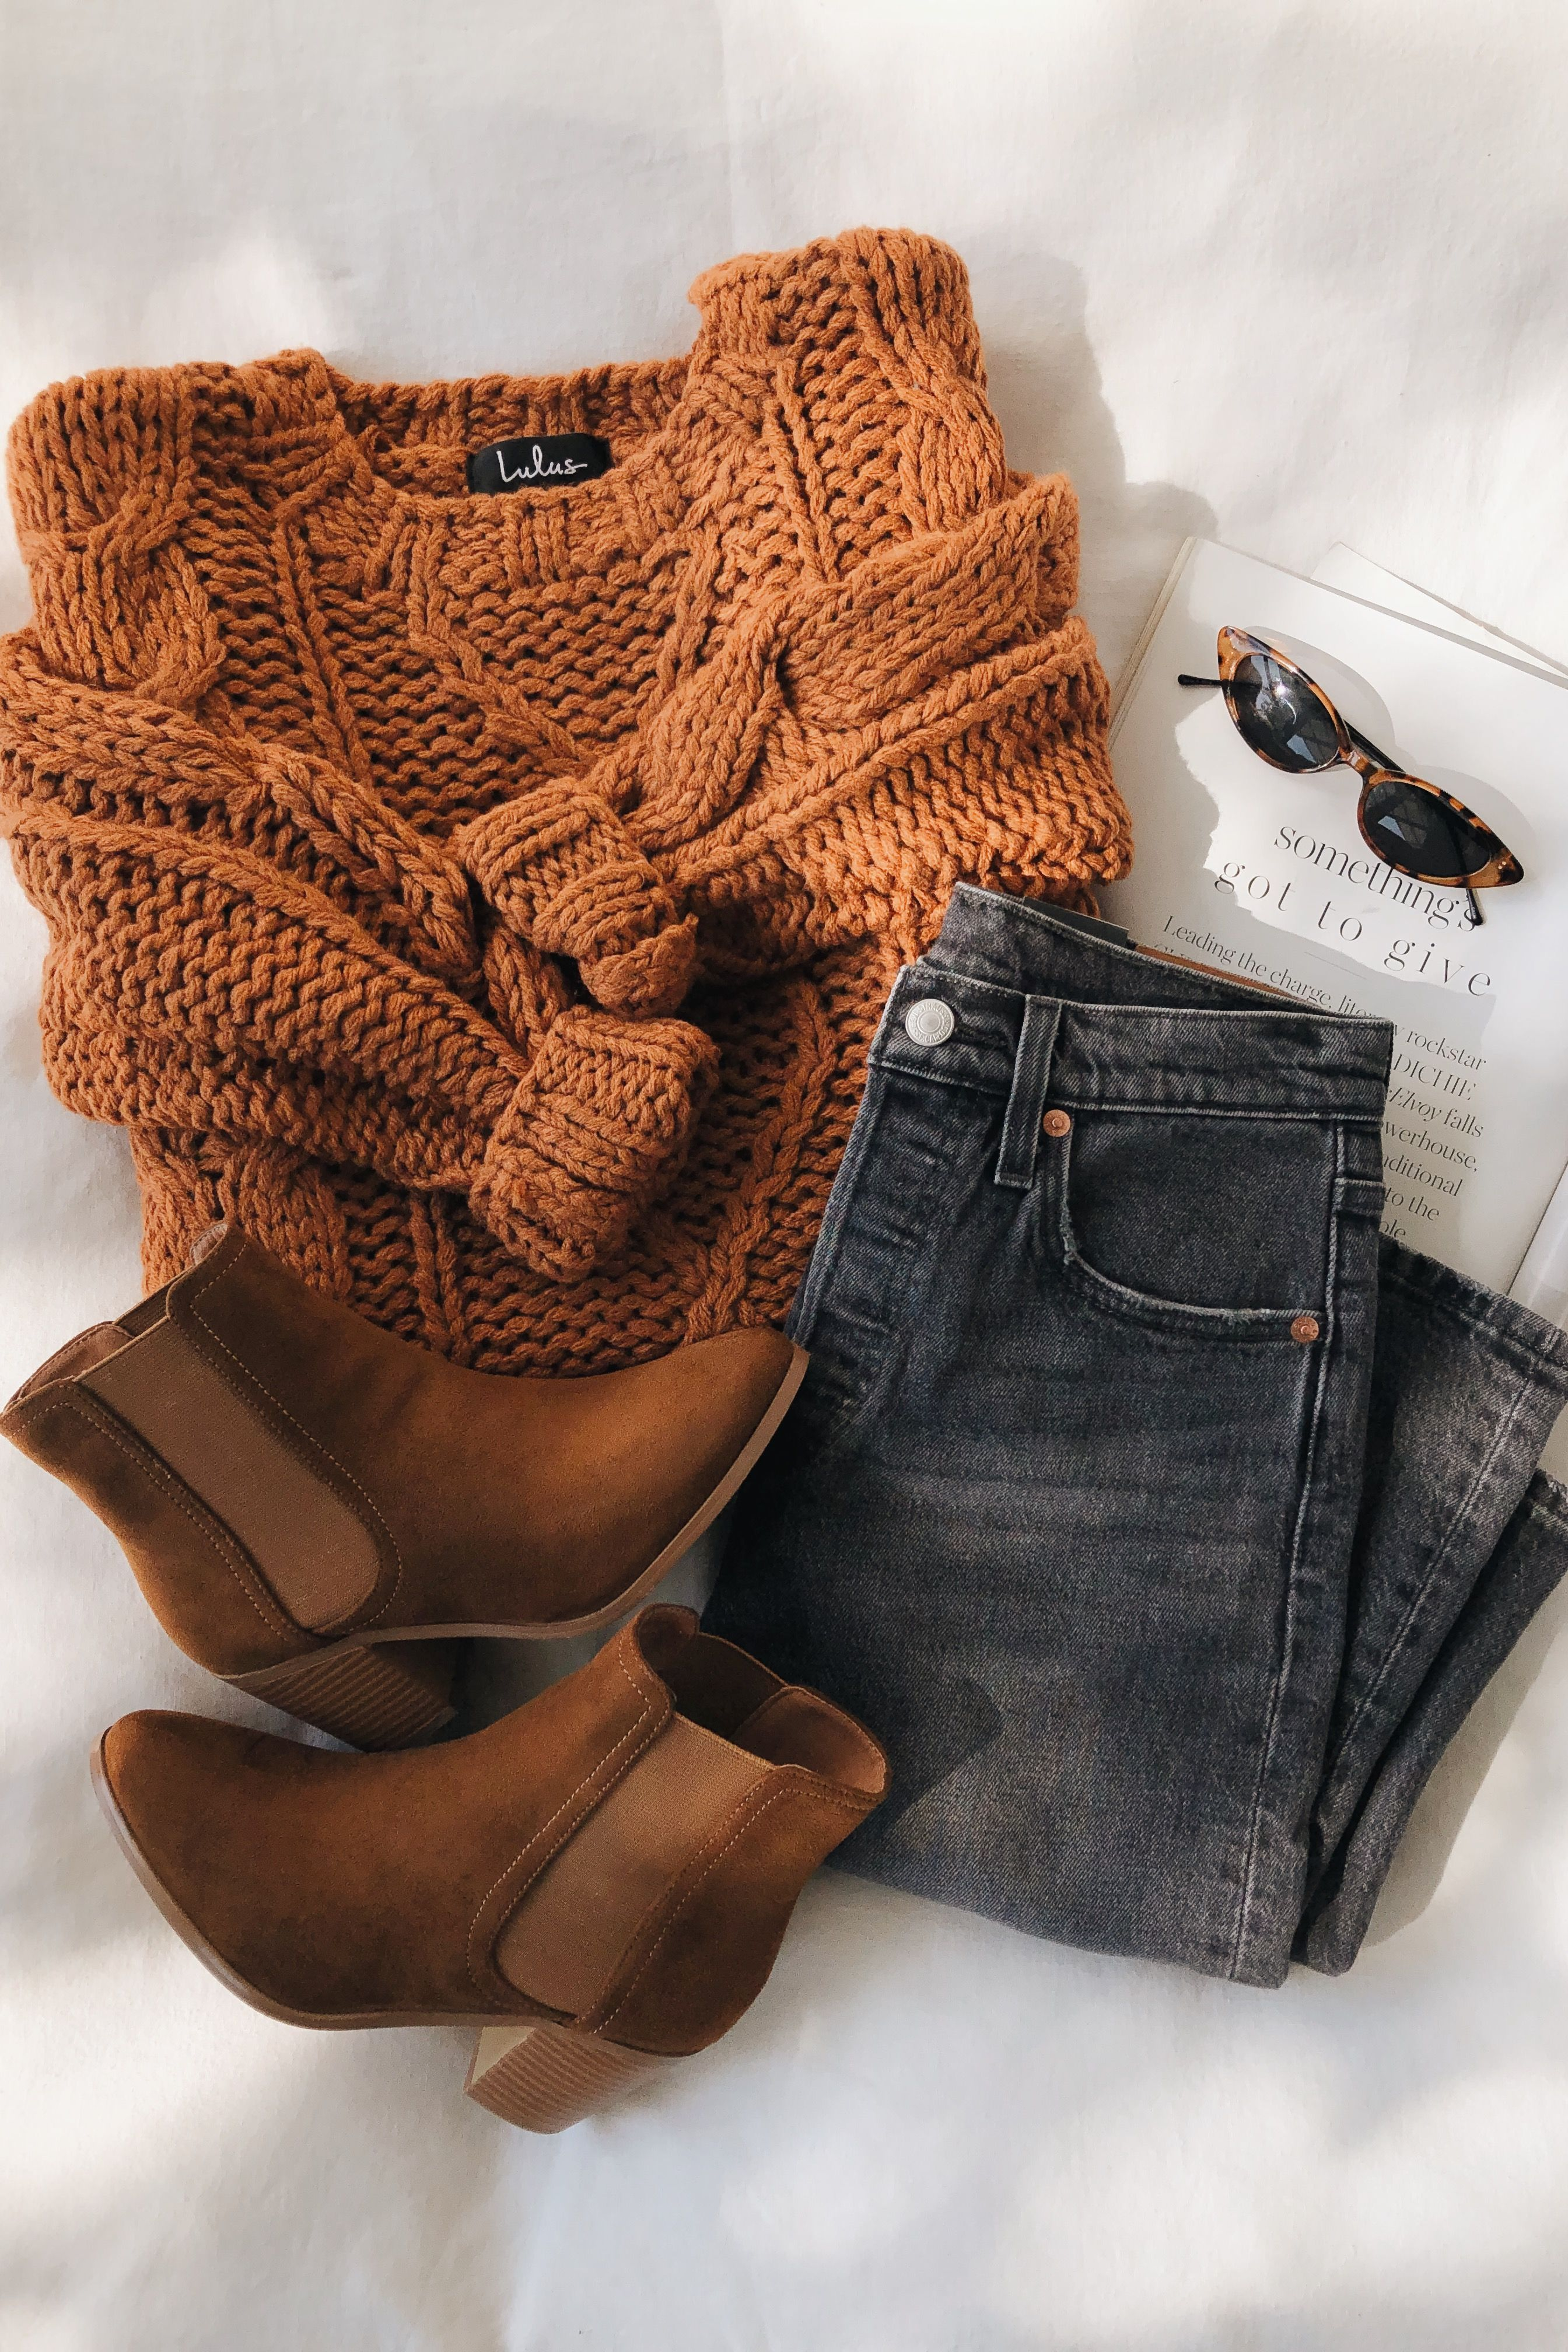 Jaylene Rust Brown Cable Knit Sweater #branddresses This chunky cable knit sweater and brown booties are essential for fall outfits. These essentials are not only versatile, but warm and cozy. #lovelulus #cutecups